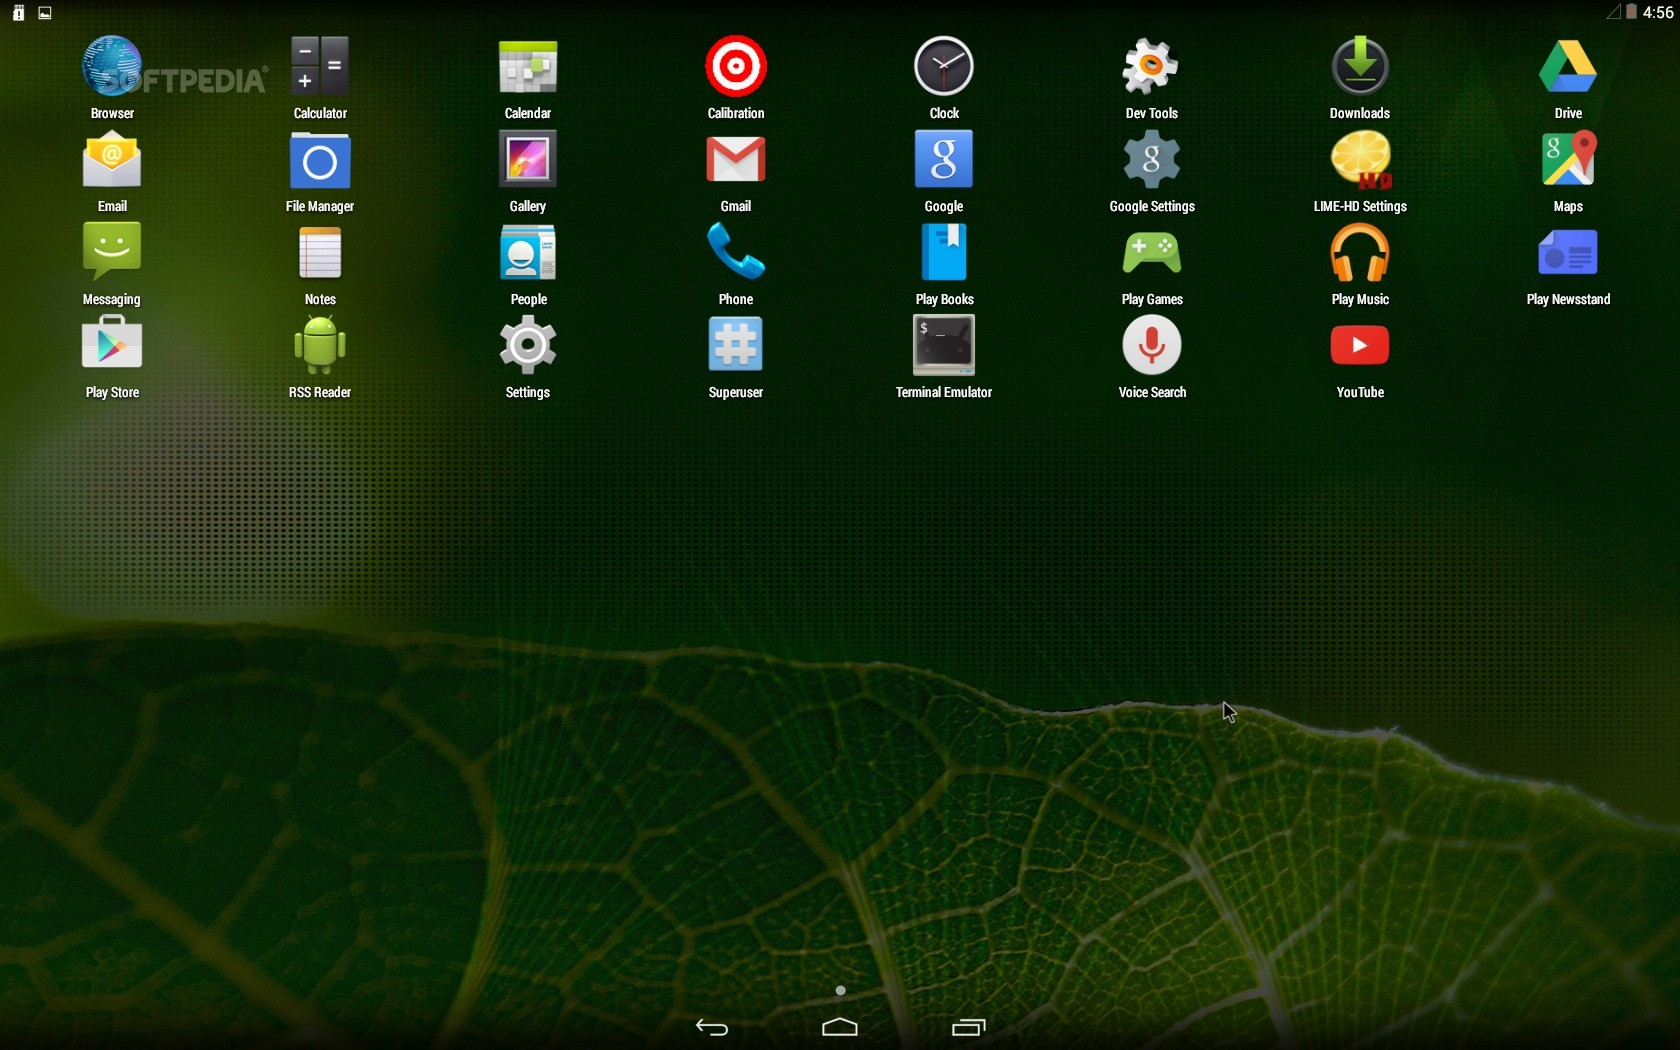 Run Google's Kit Kat Android on Your PC as a Linux Distro